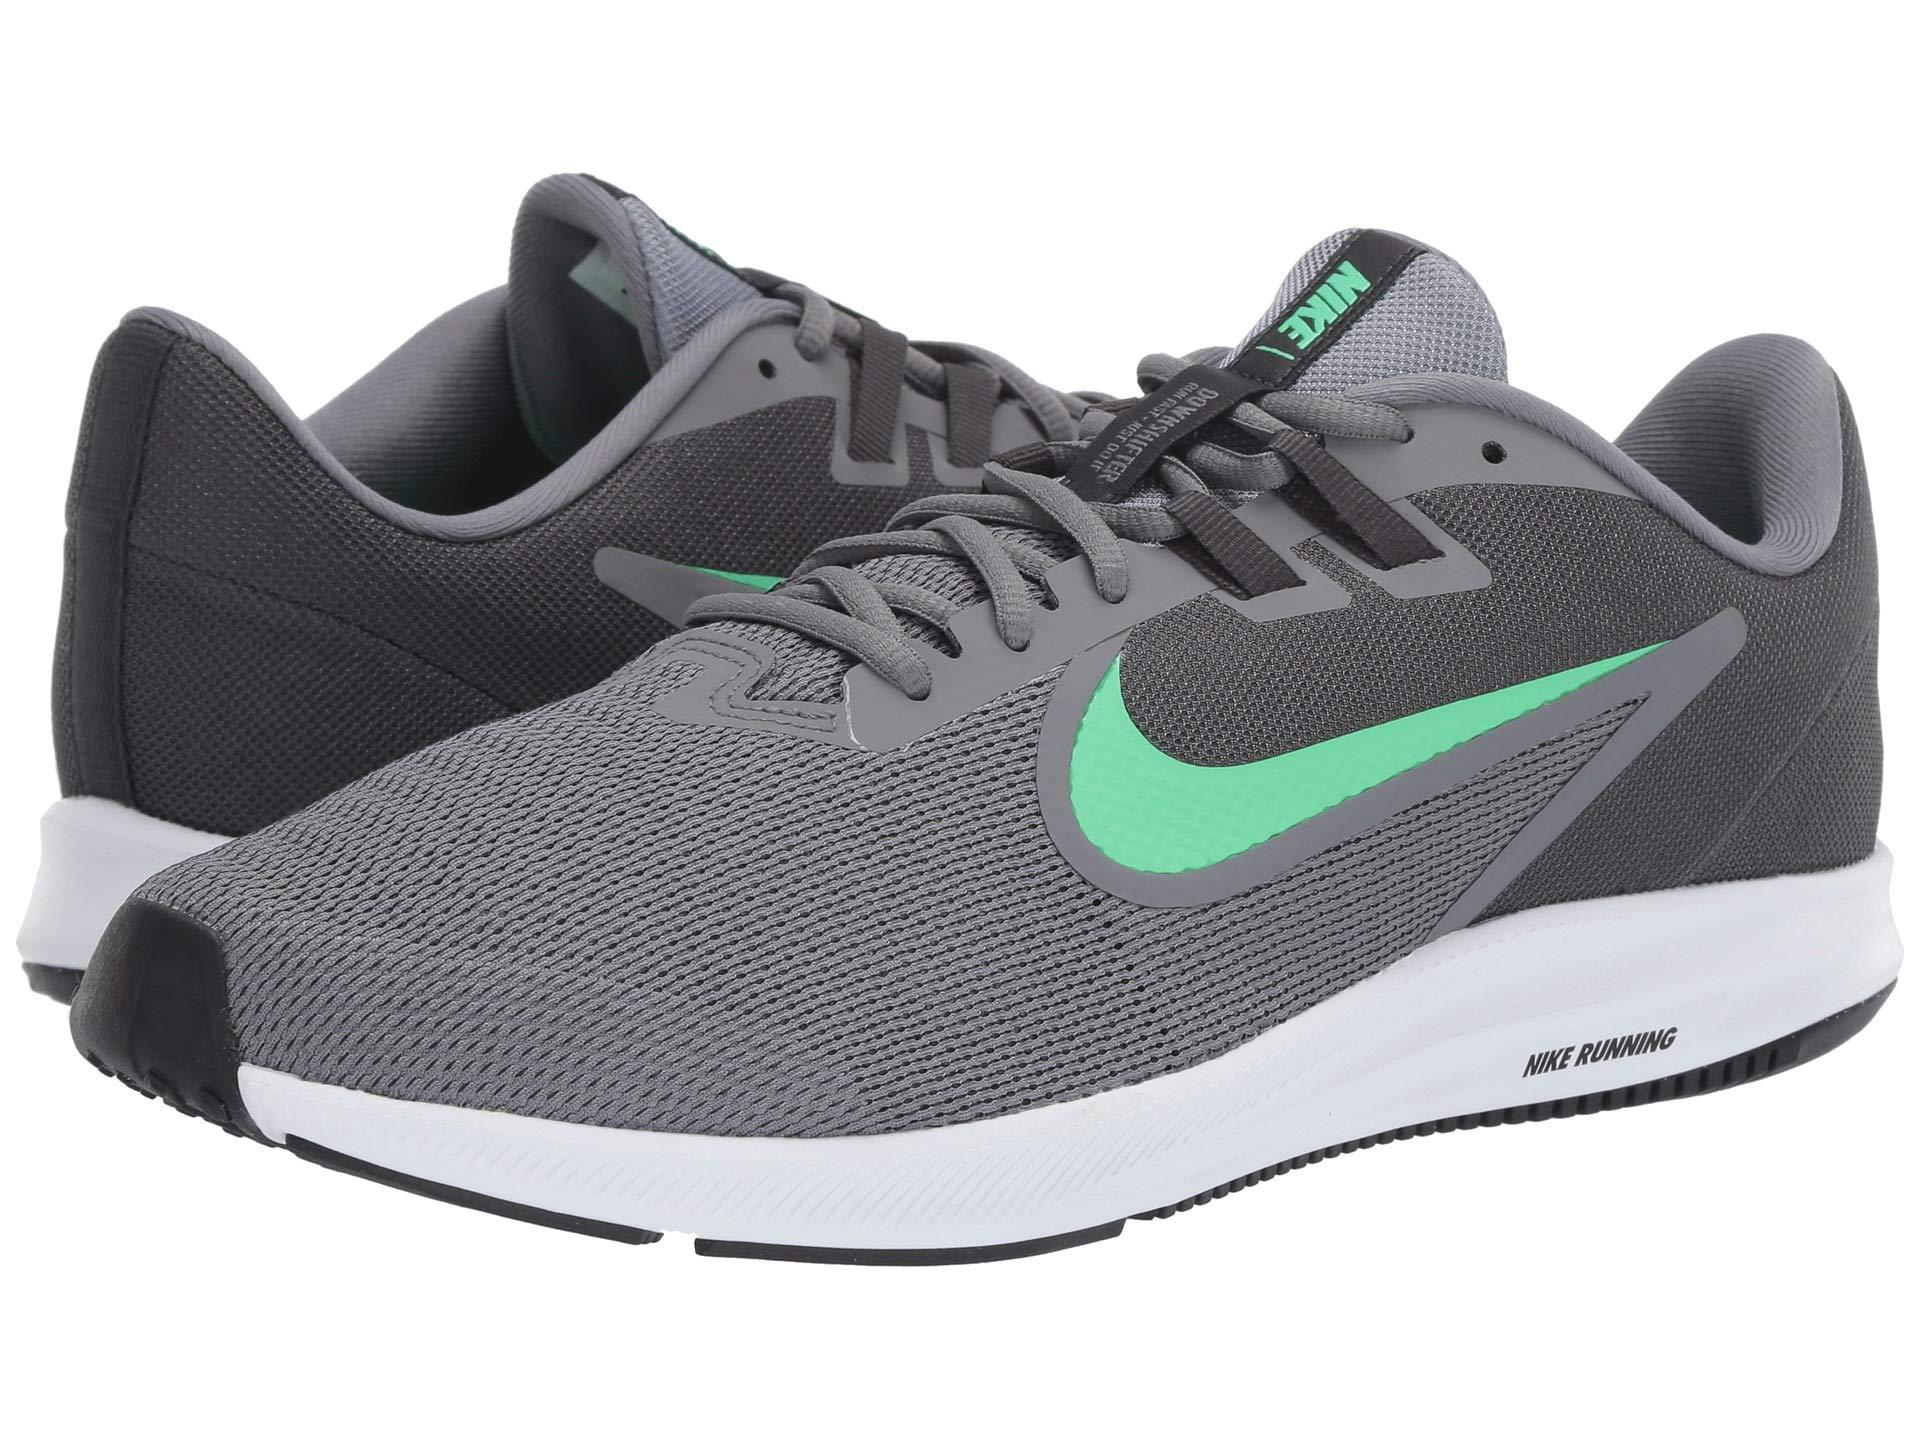 online retailer 6a354 d7dc5 Lyst - Nike Downshifter 9 (black white anthracite cool Grey) Men s ...